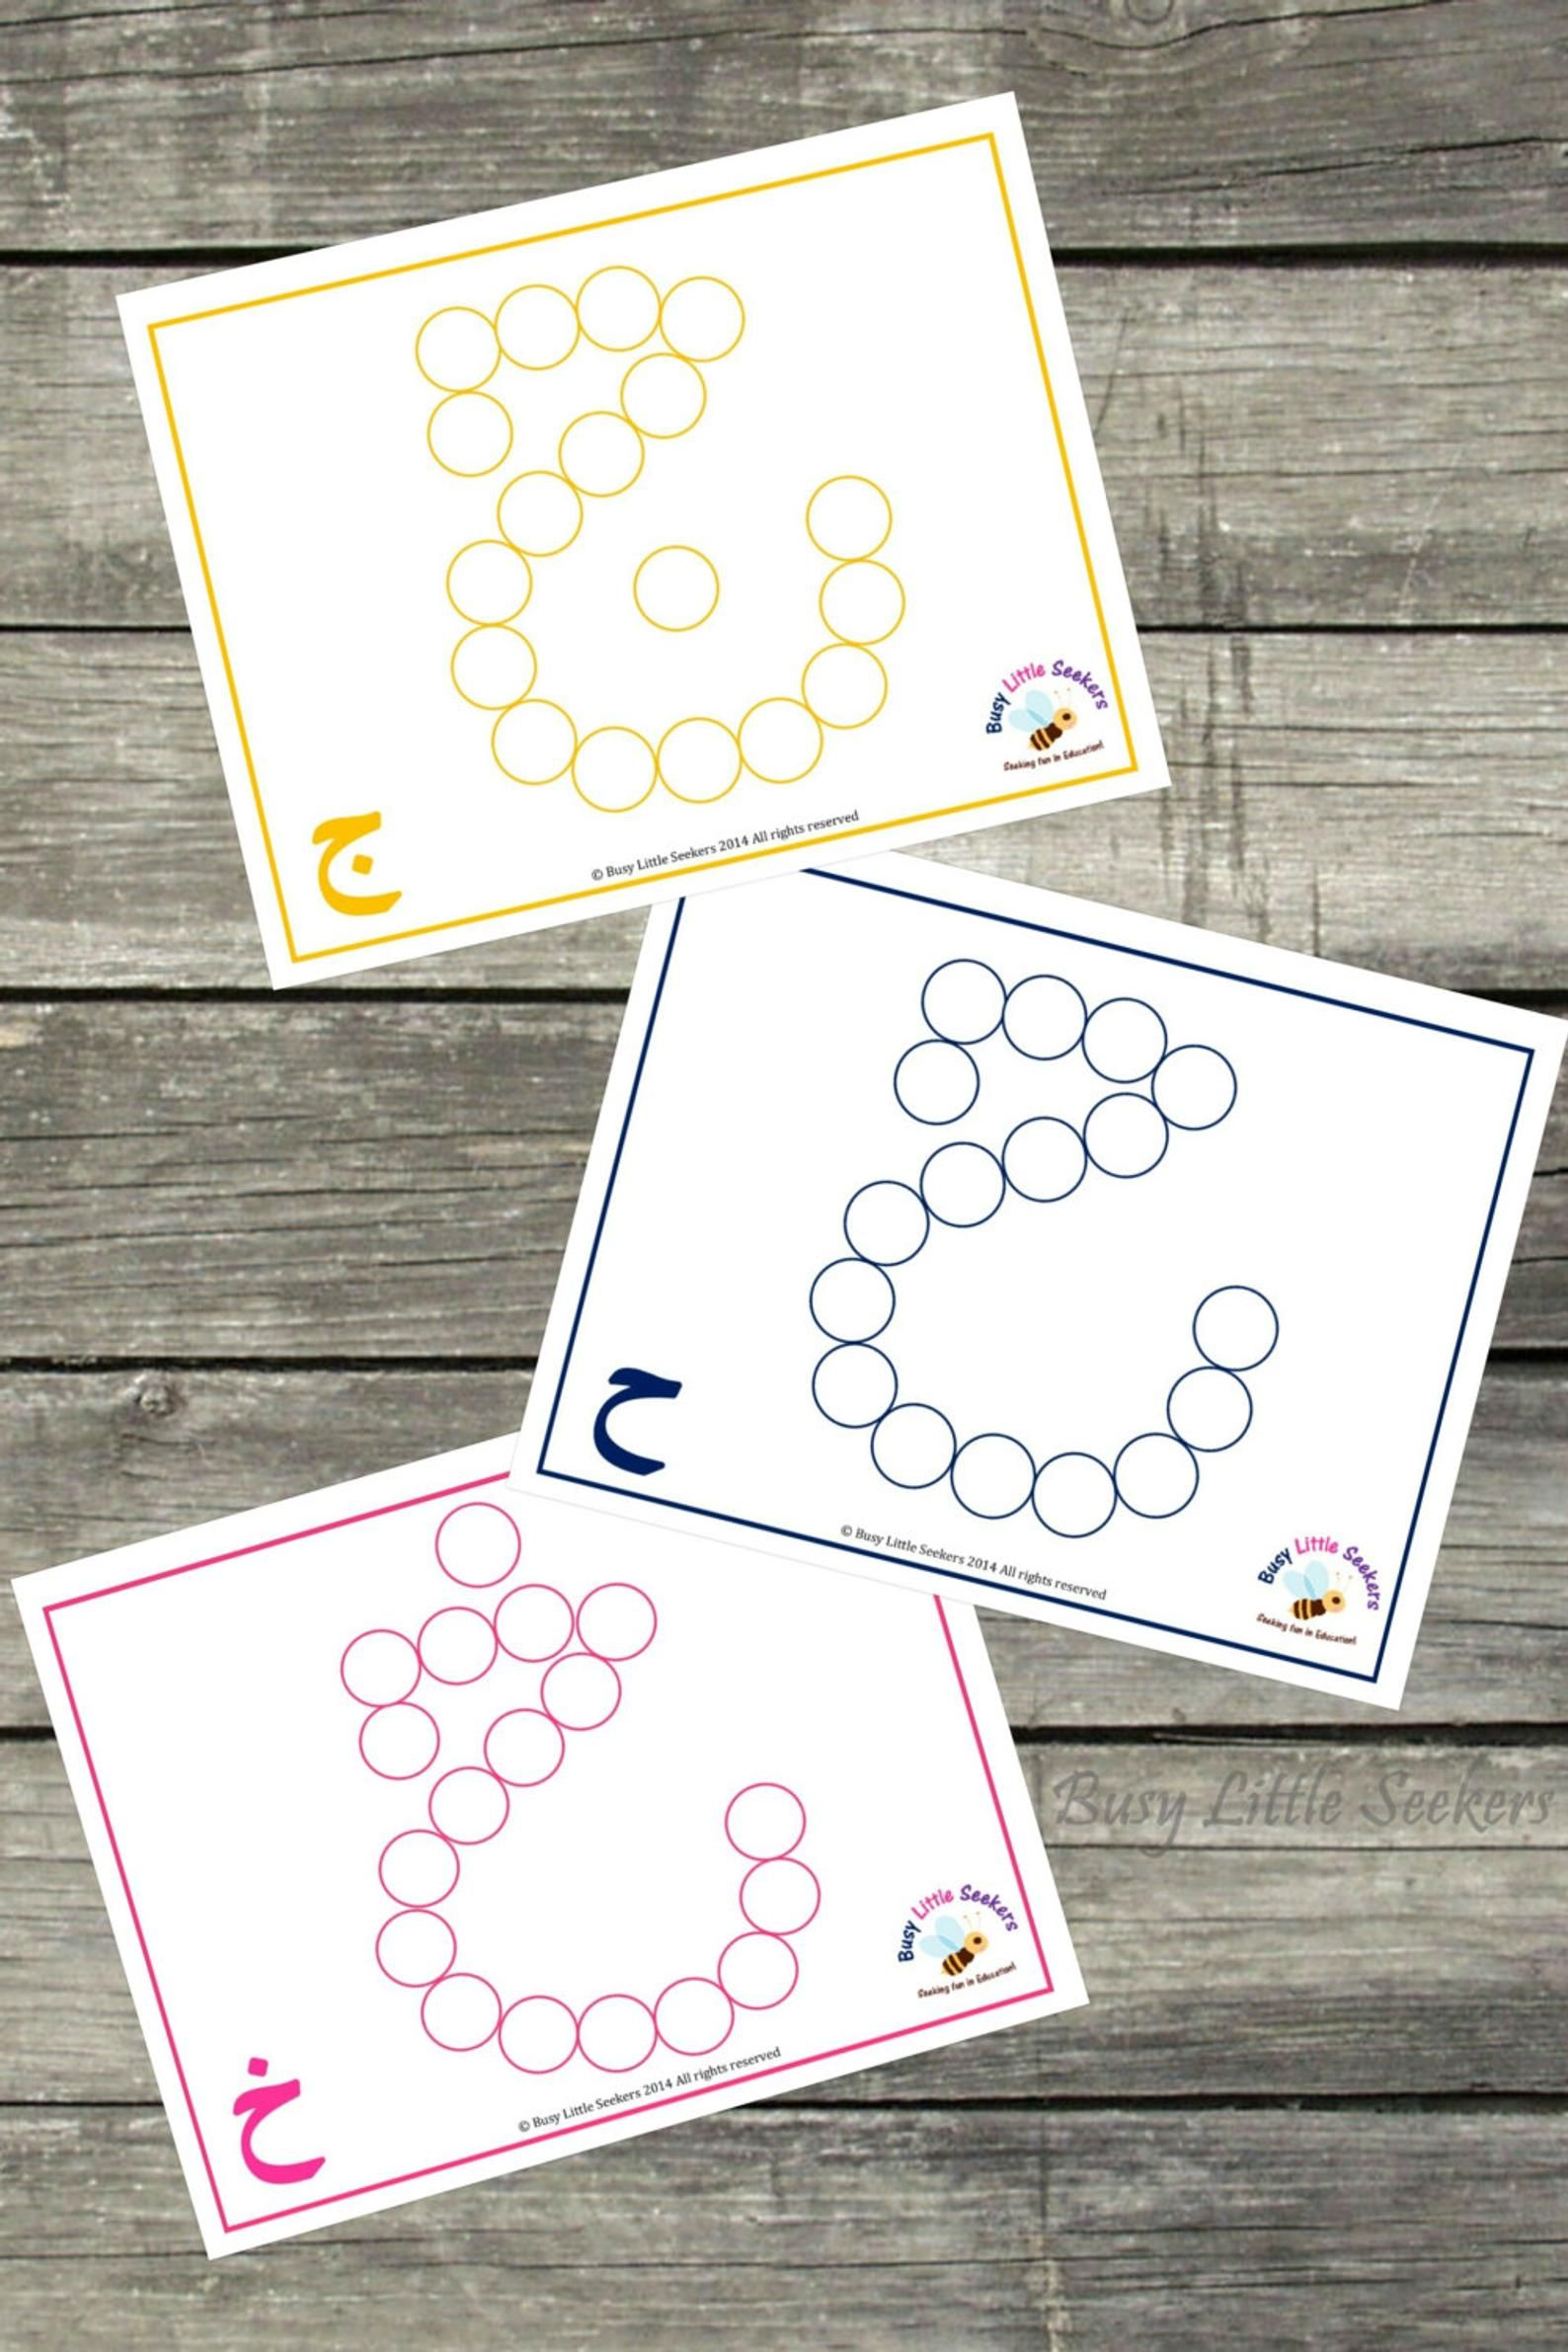 28 Pages Of Colorful Digital Arabic Letter Printable Pom